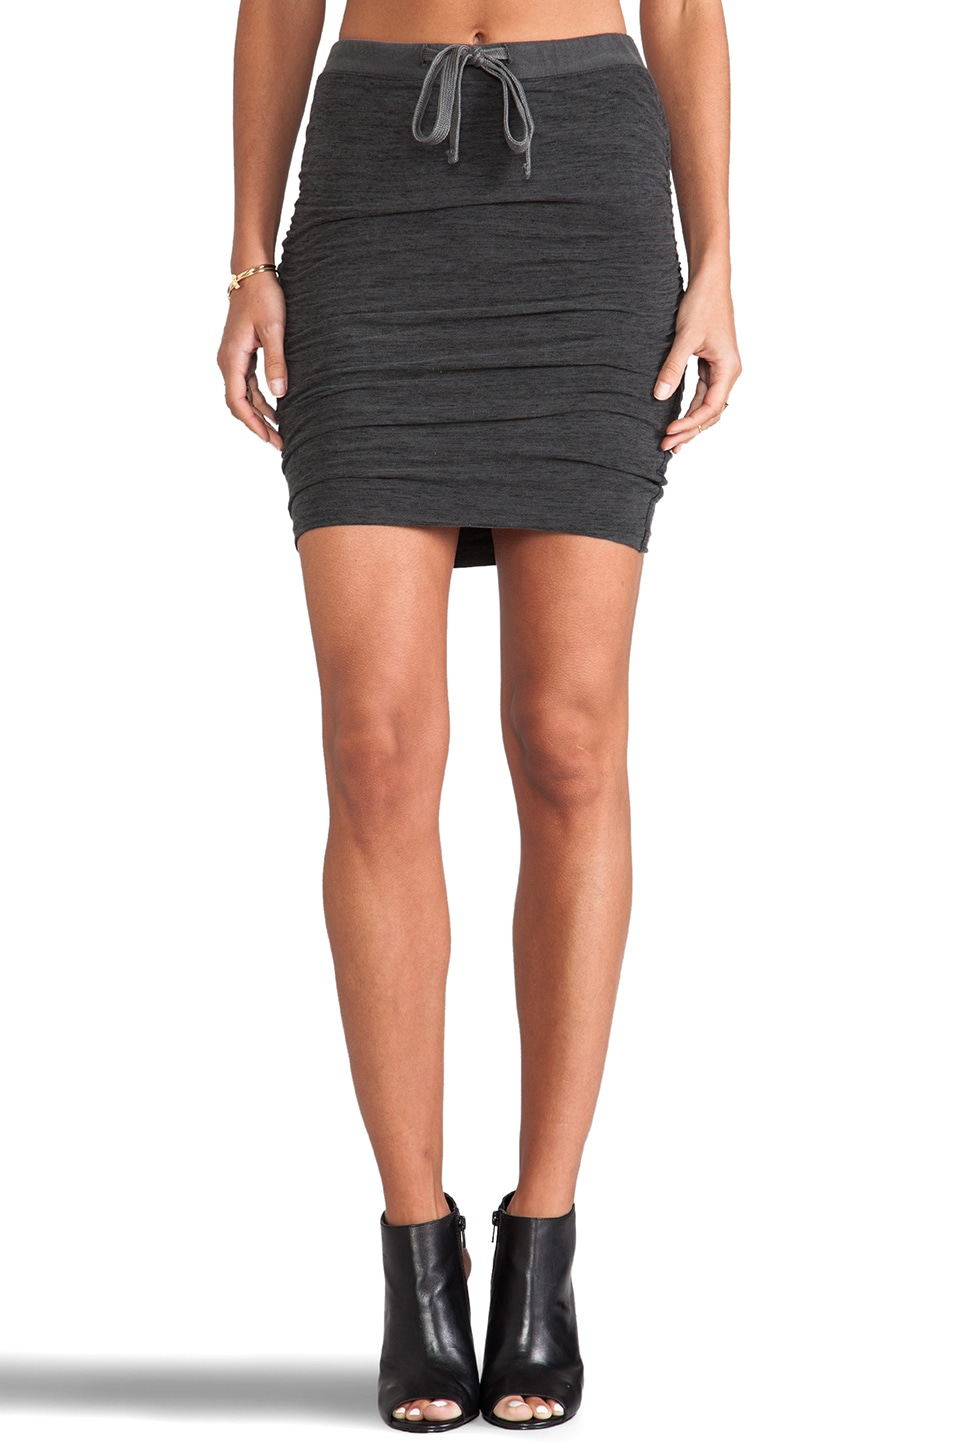 James Perse Drawstring Skirt in Charcoal